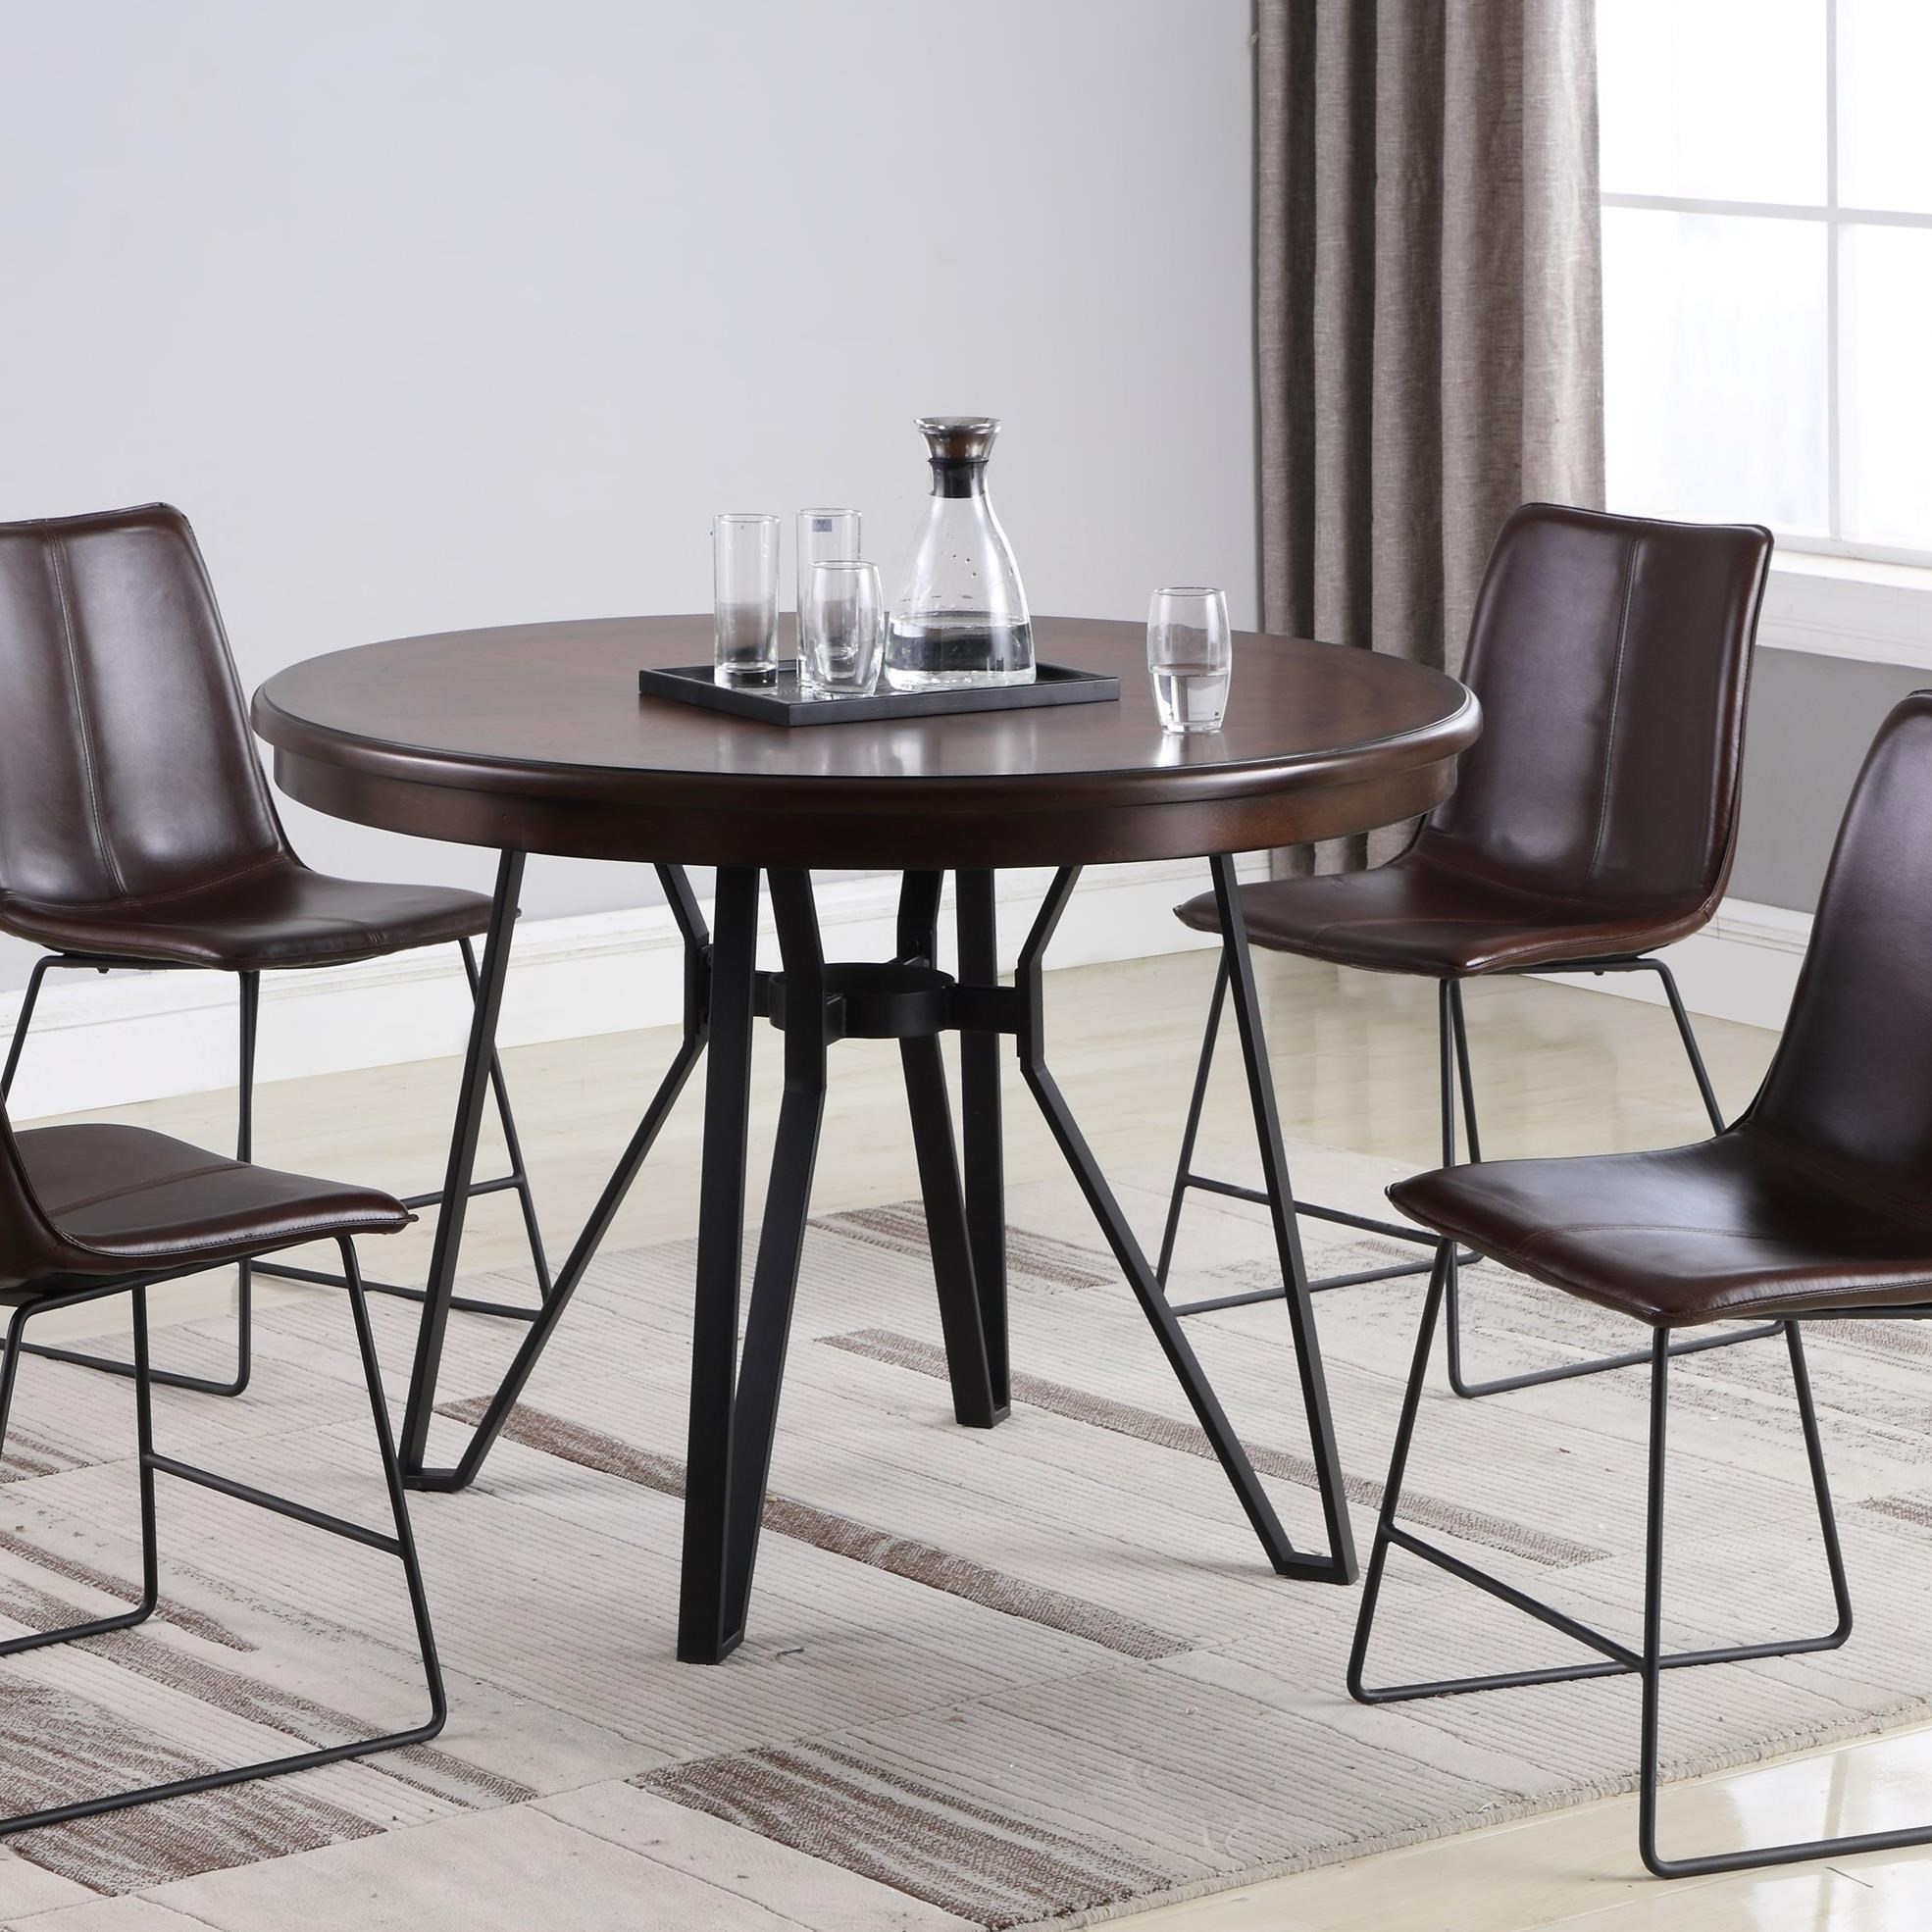 Lifestyle C1860p C1860d Dtx Industrial Round Dining Table Sam Levitz Furniture Kitchen Tables